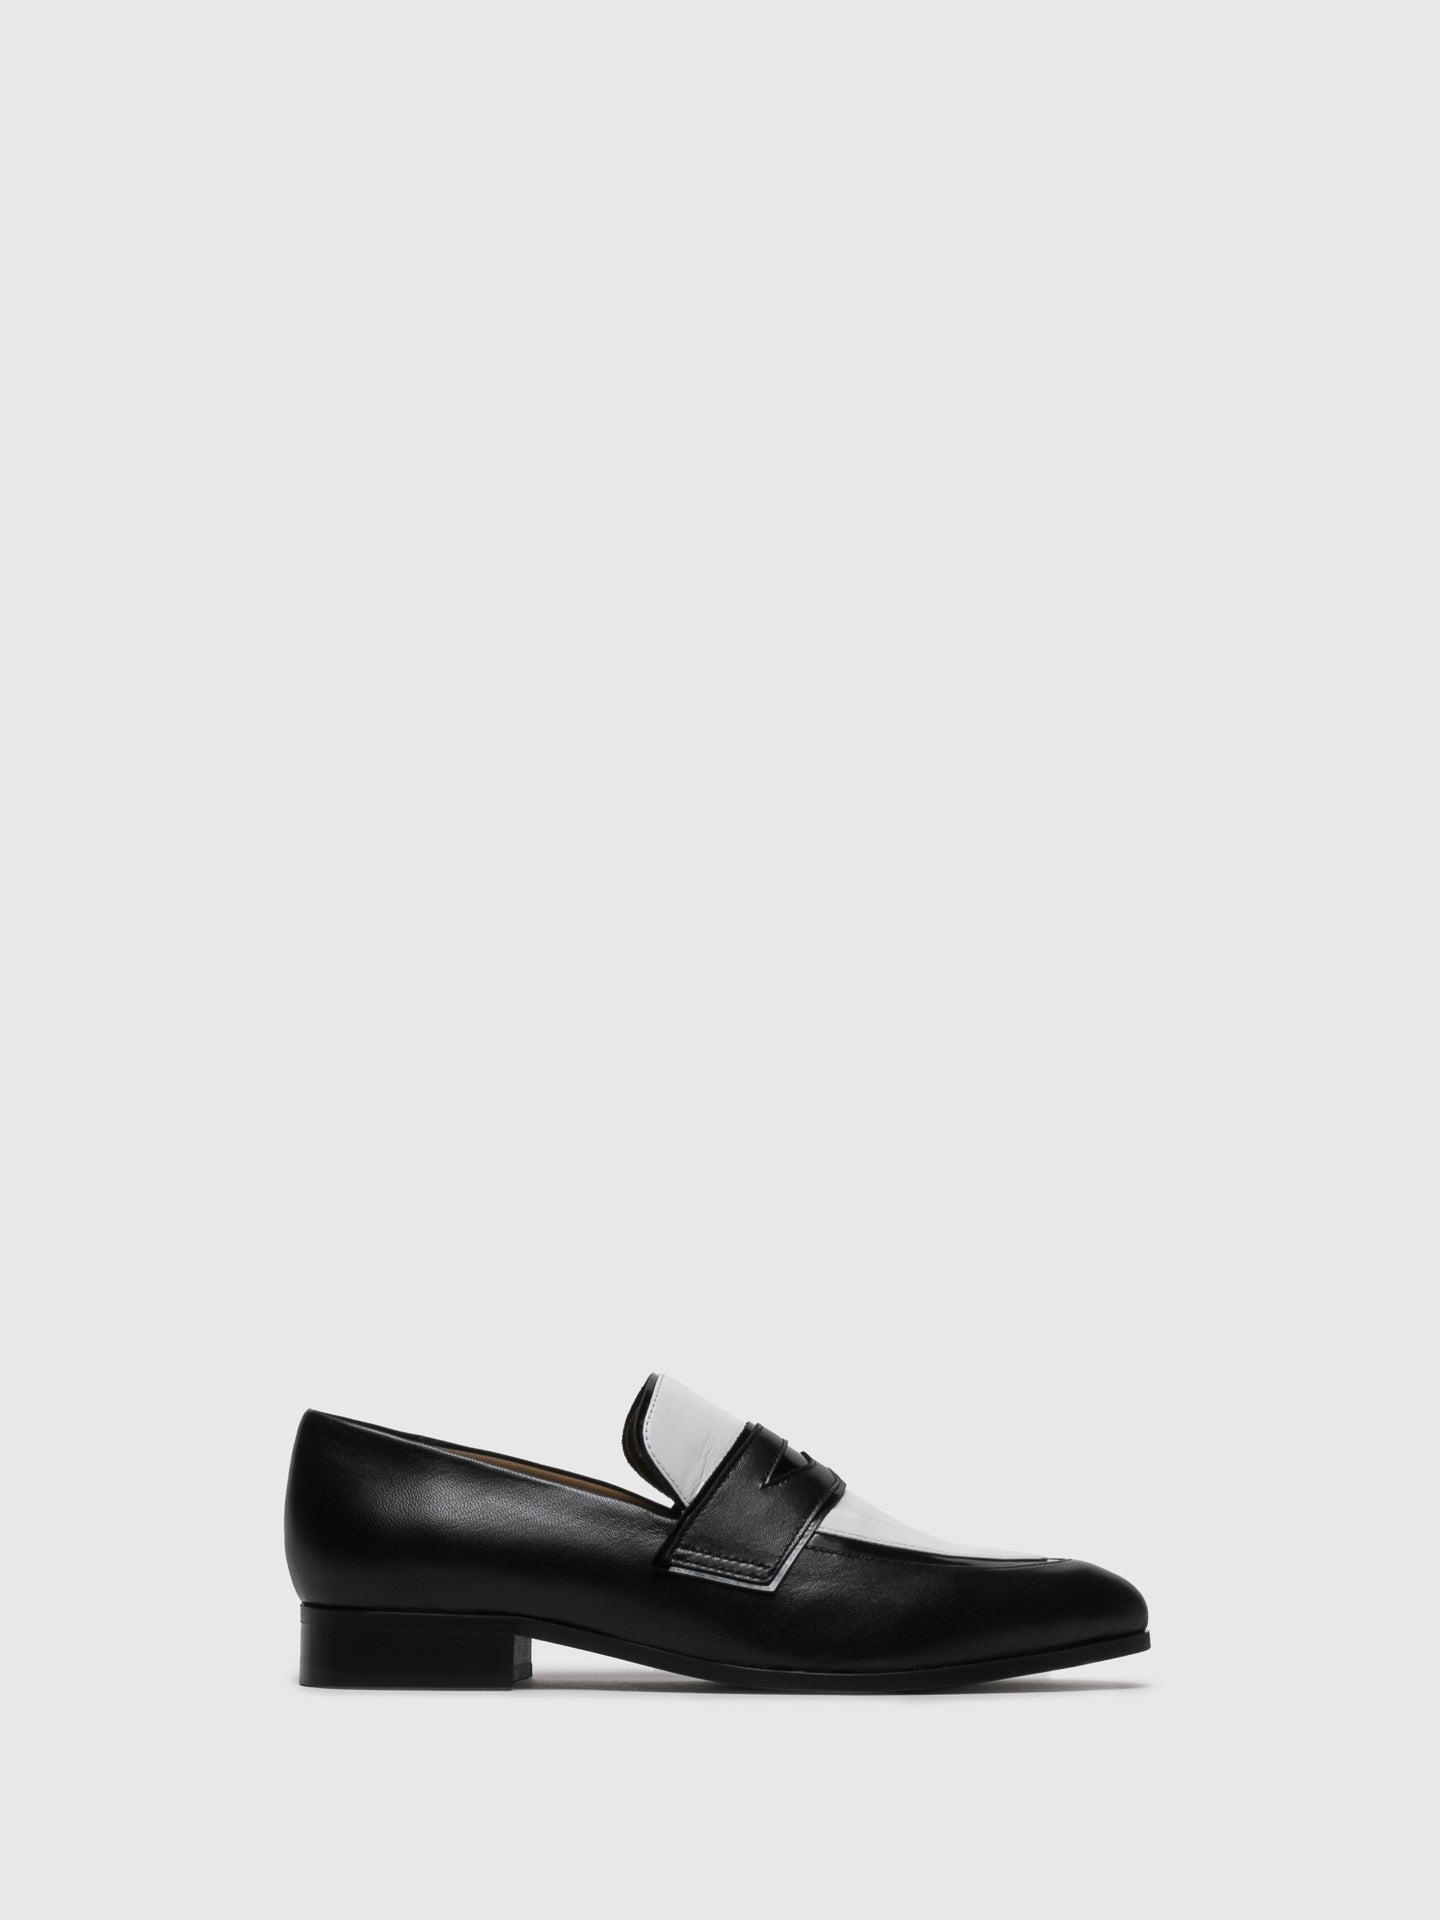 JJ Heitor Zapatos Loafers en color Ante Negro